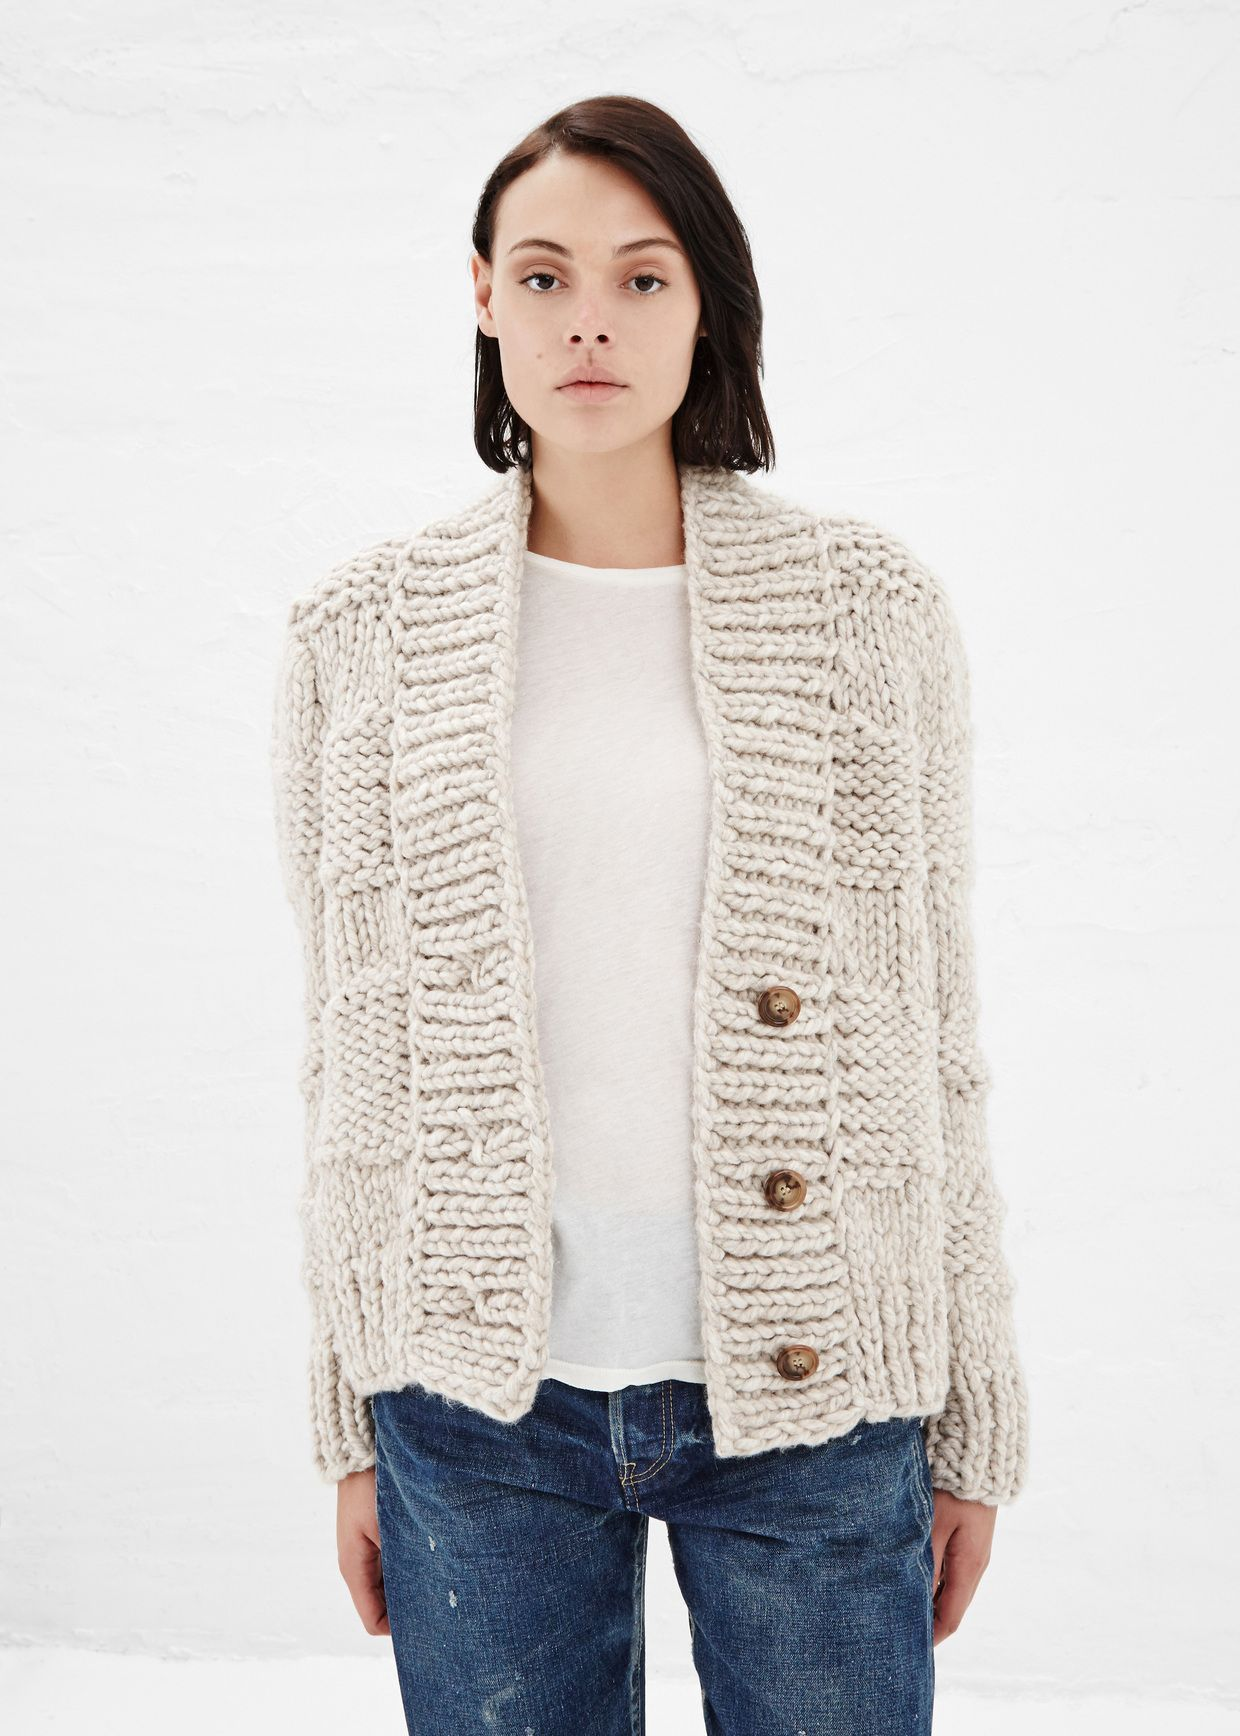 KNITWEAR - Cardigans Maison Martin Margiela Comfortable For Sale Perfect New Online Best Buy Pre Order Online SykAV